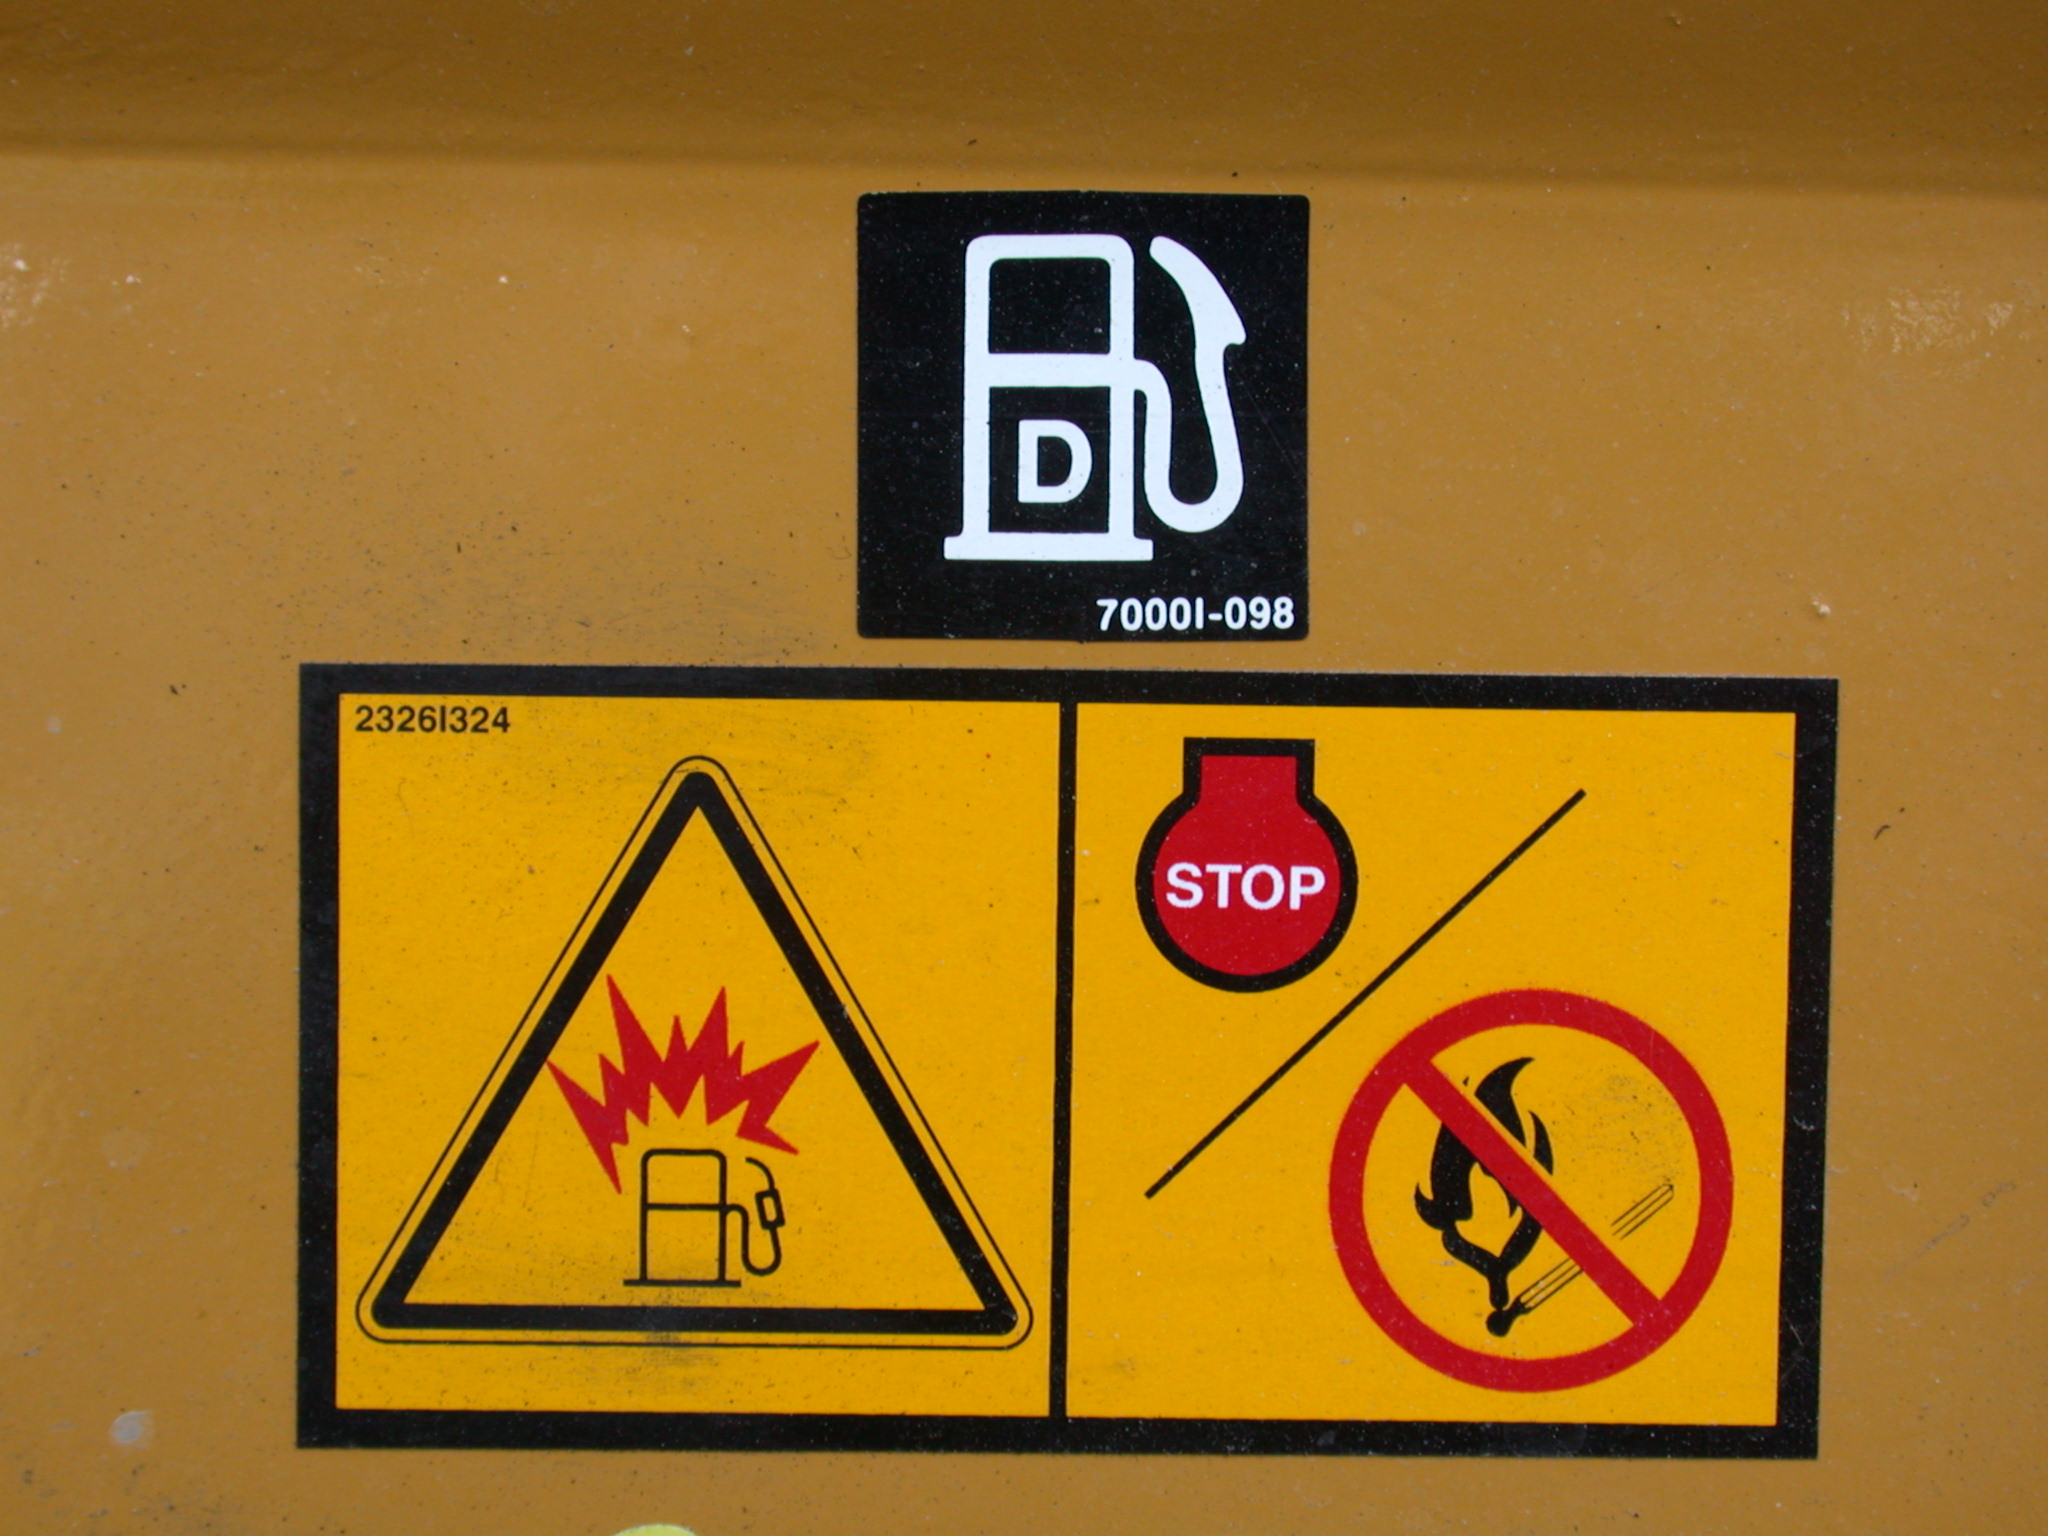 signs uel gas explosion danger inflammable